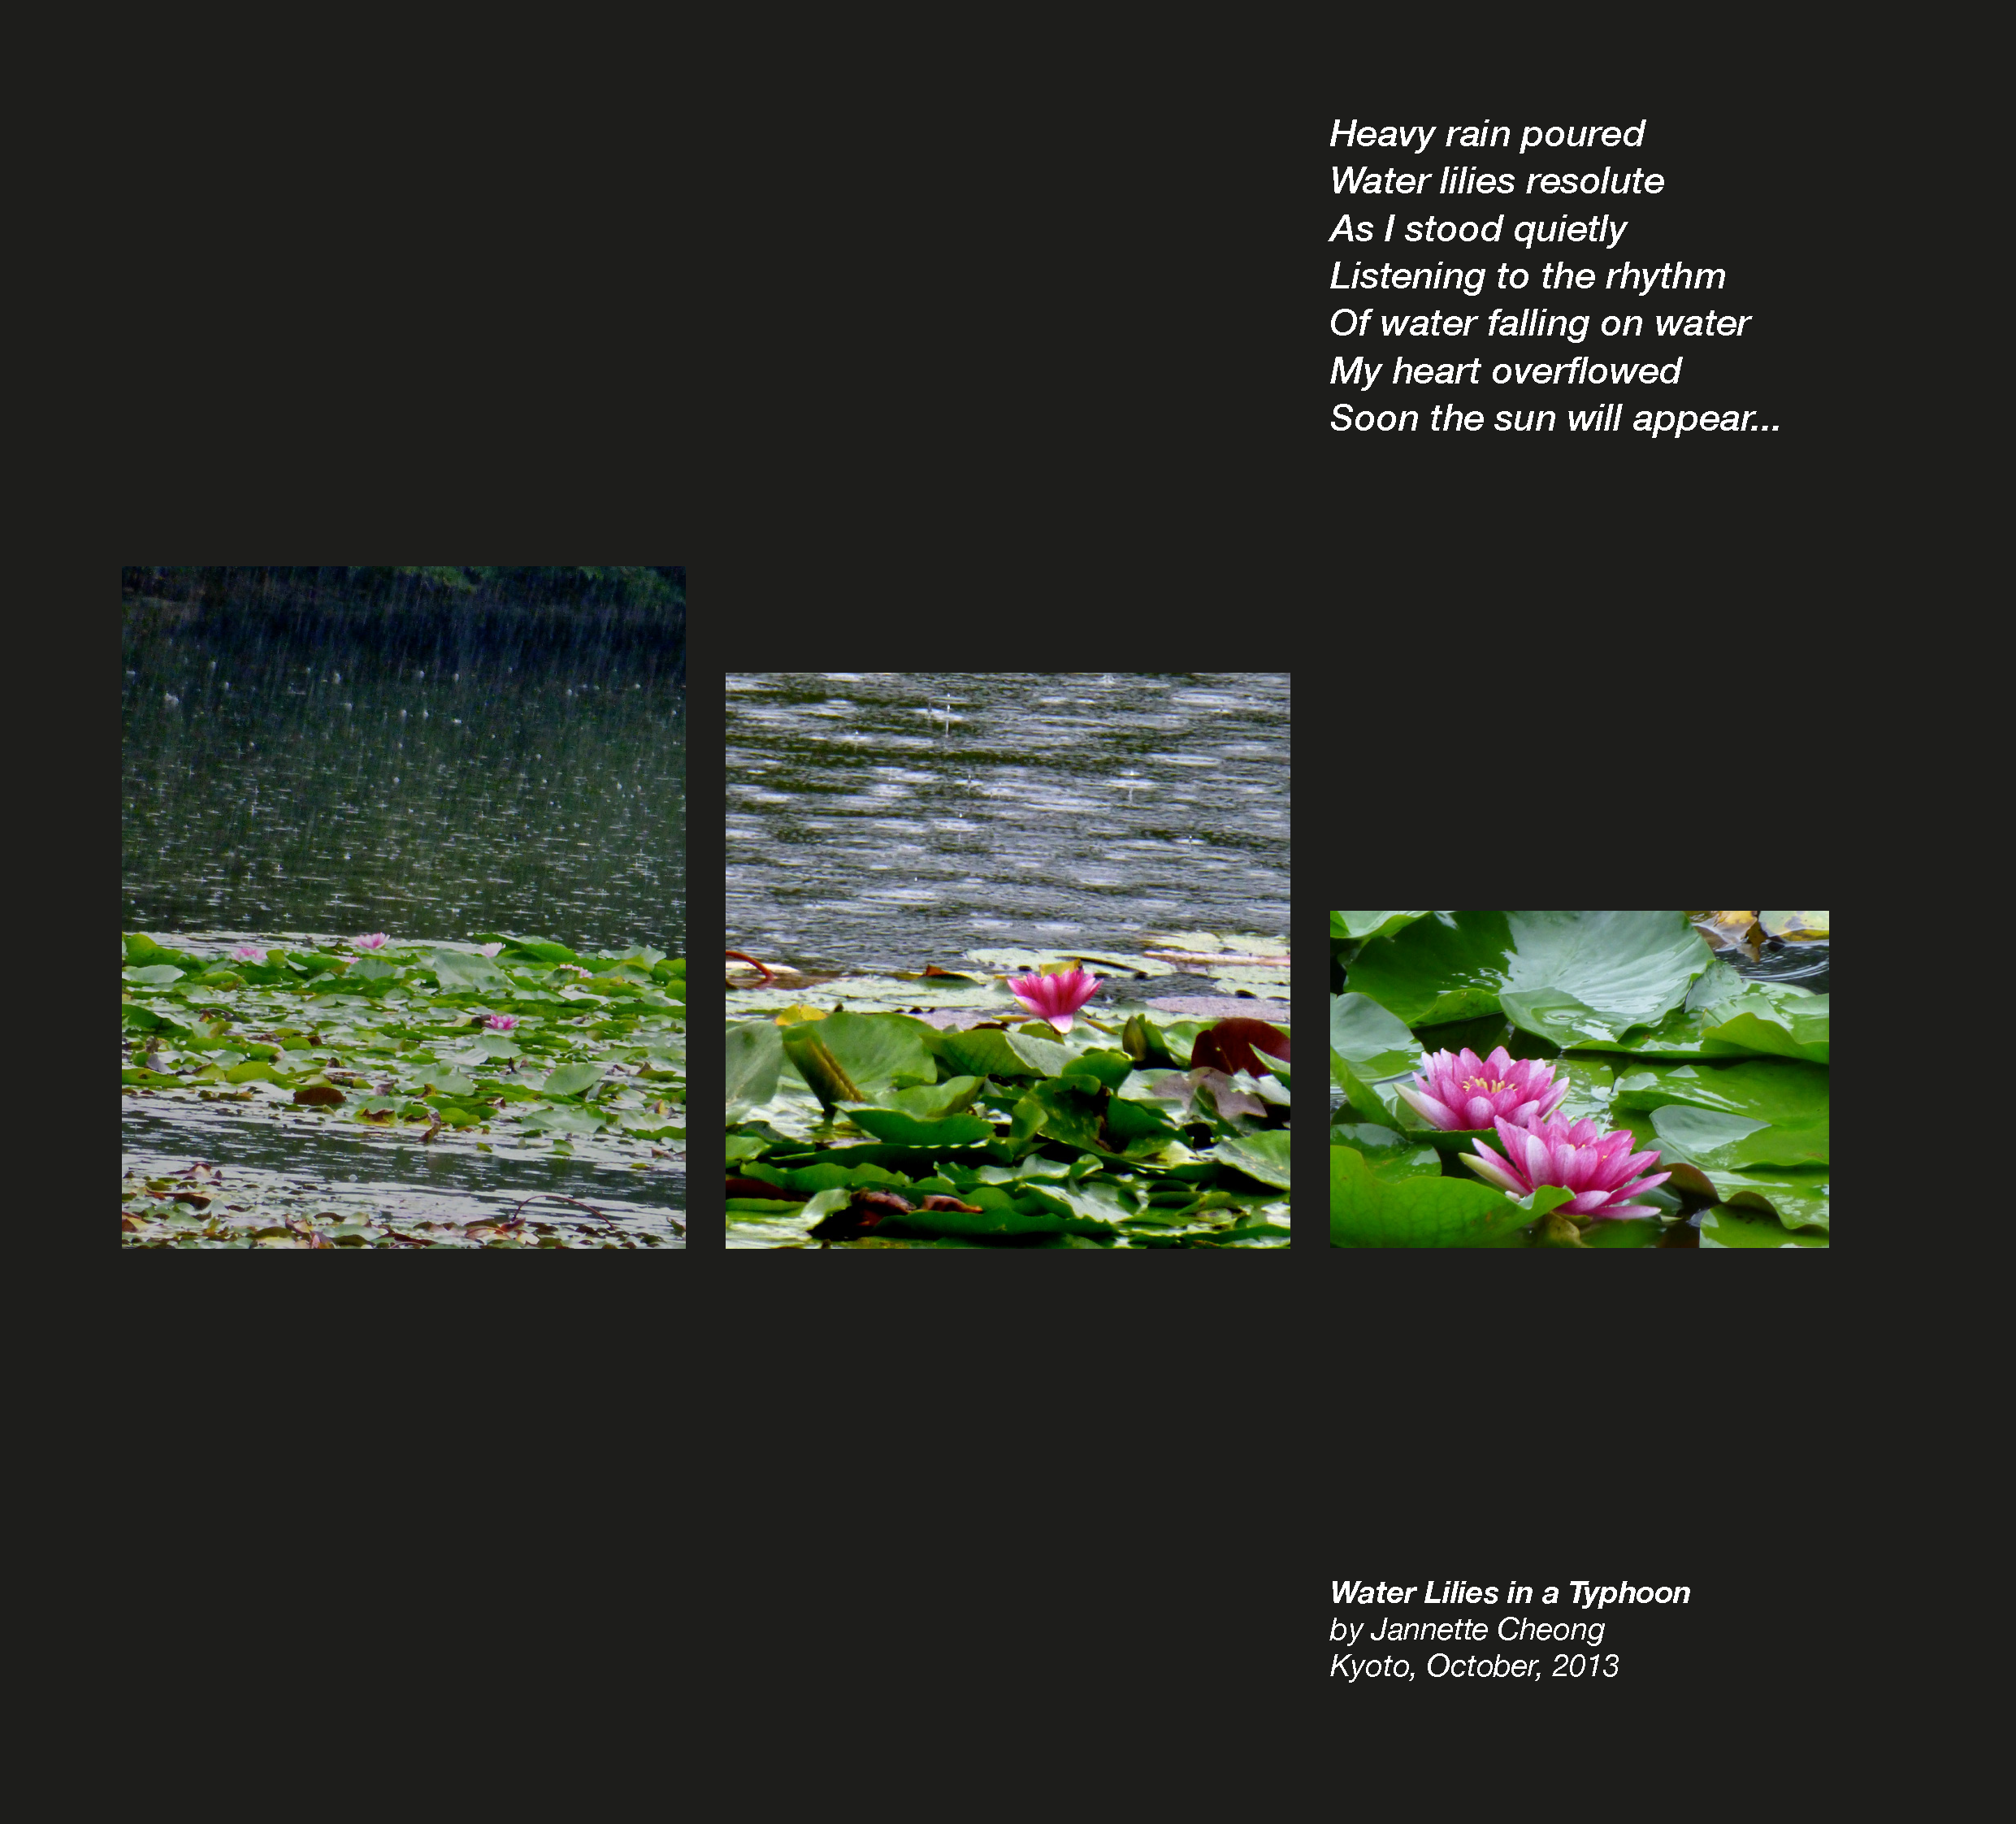 Water lilies in a Typhoon4.png